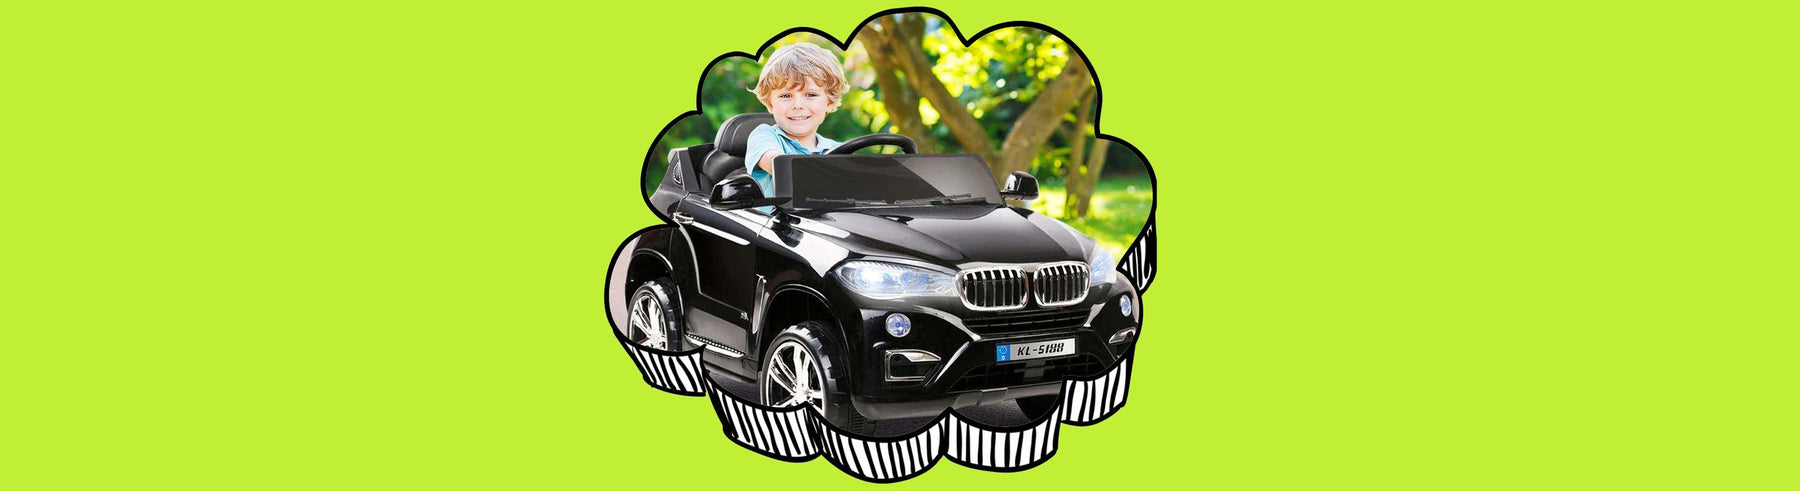 BMW X5 Inspired Kids Ride on SUV with Remote Control